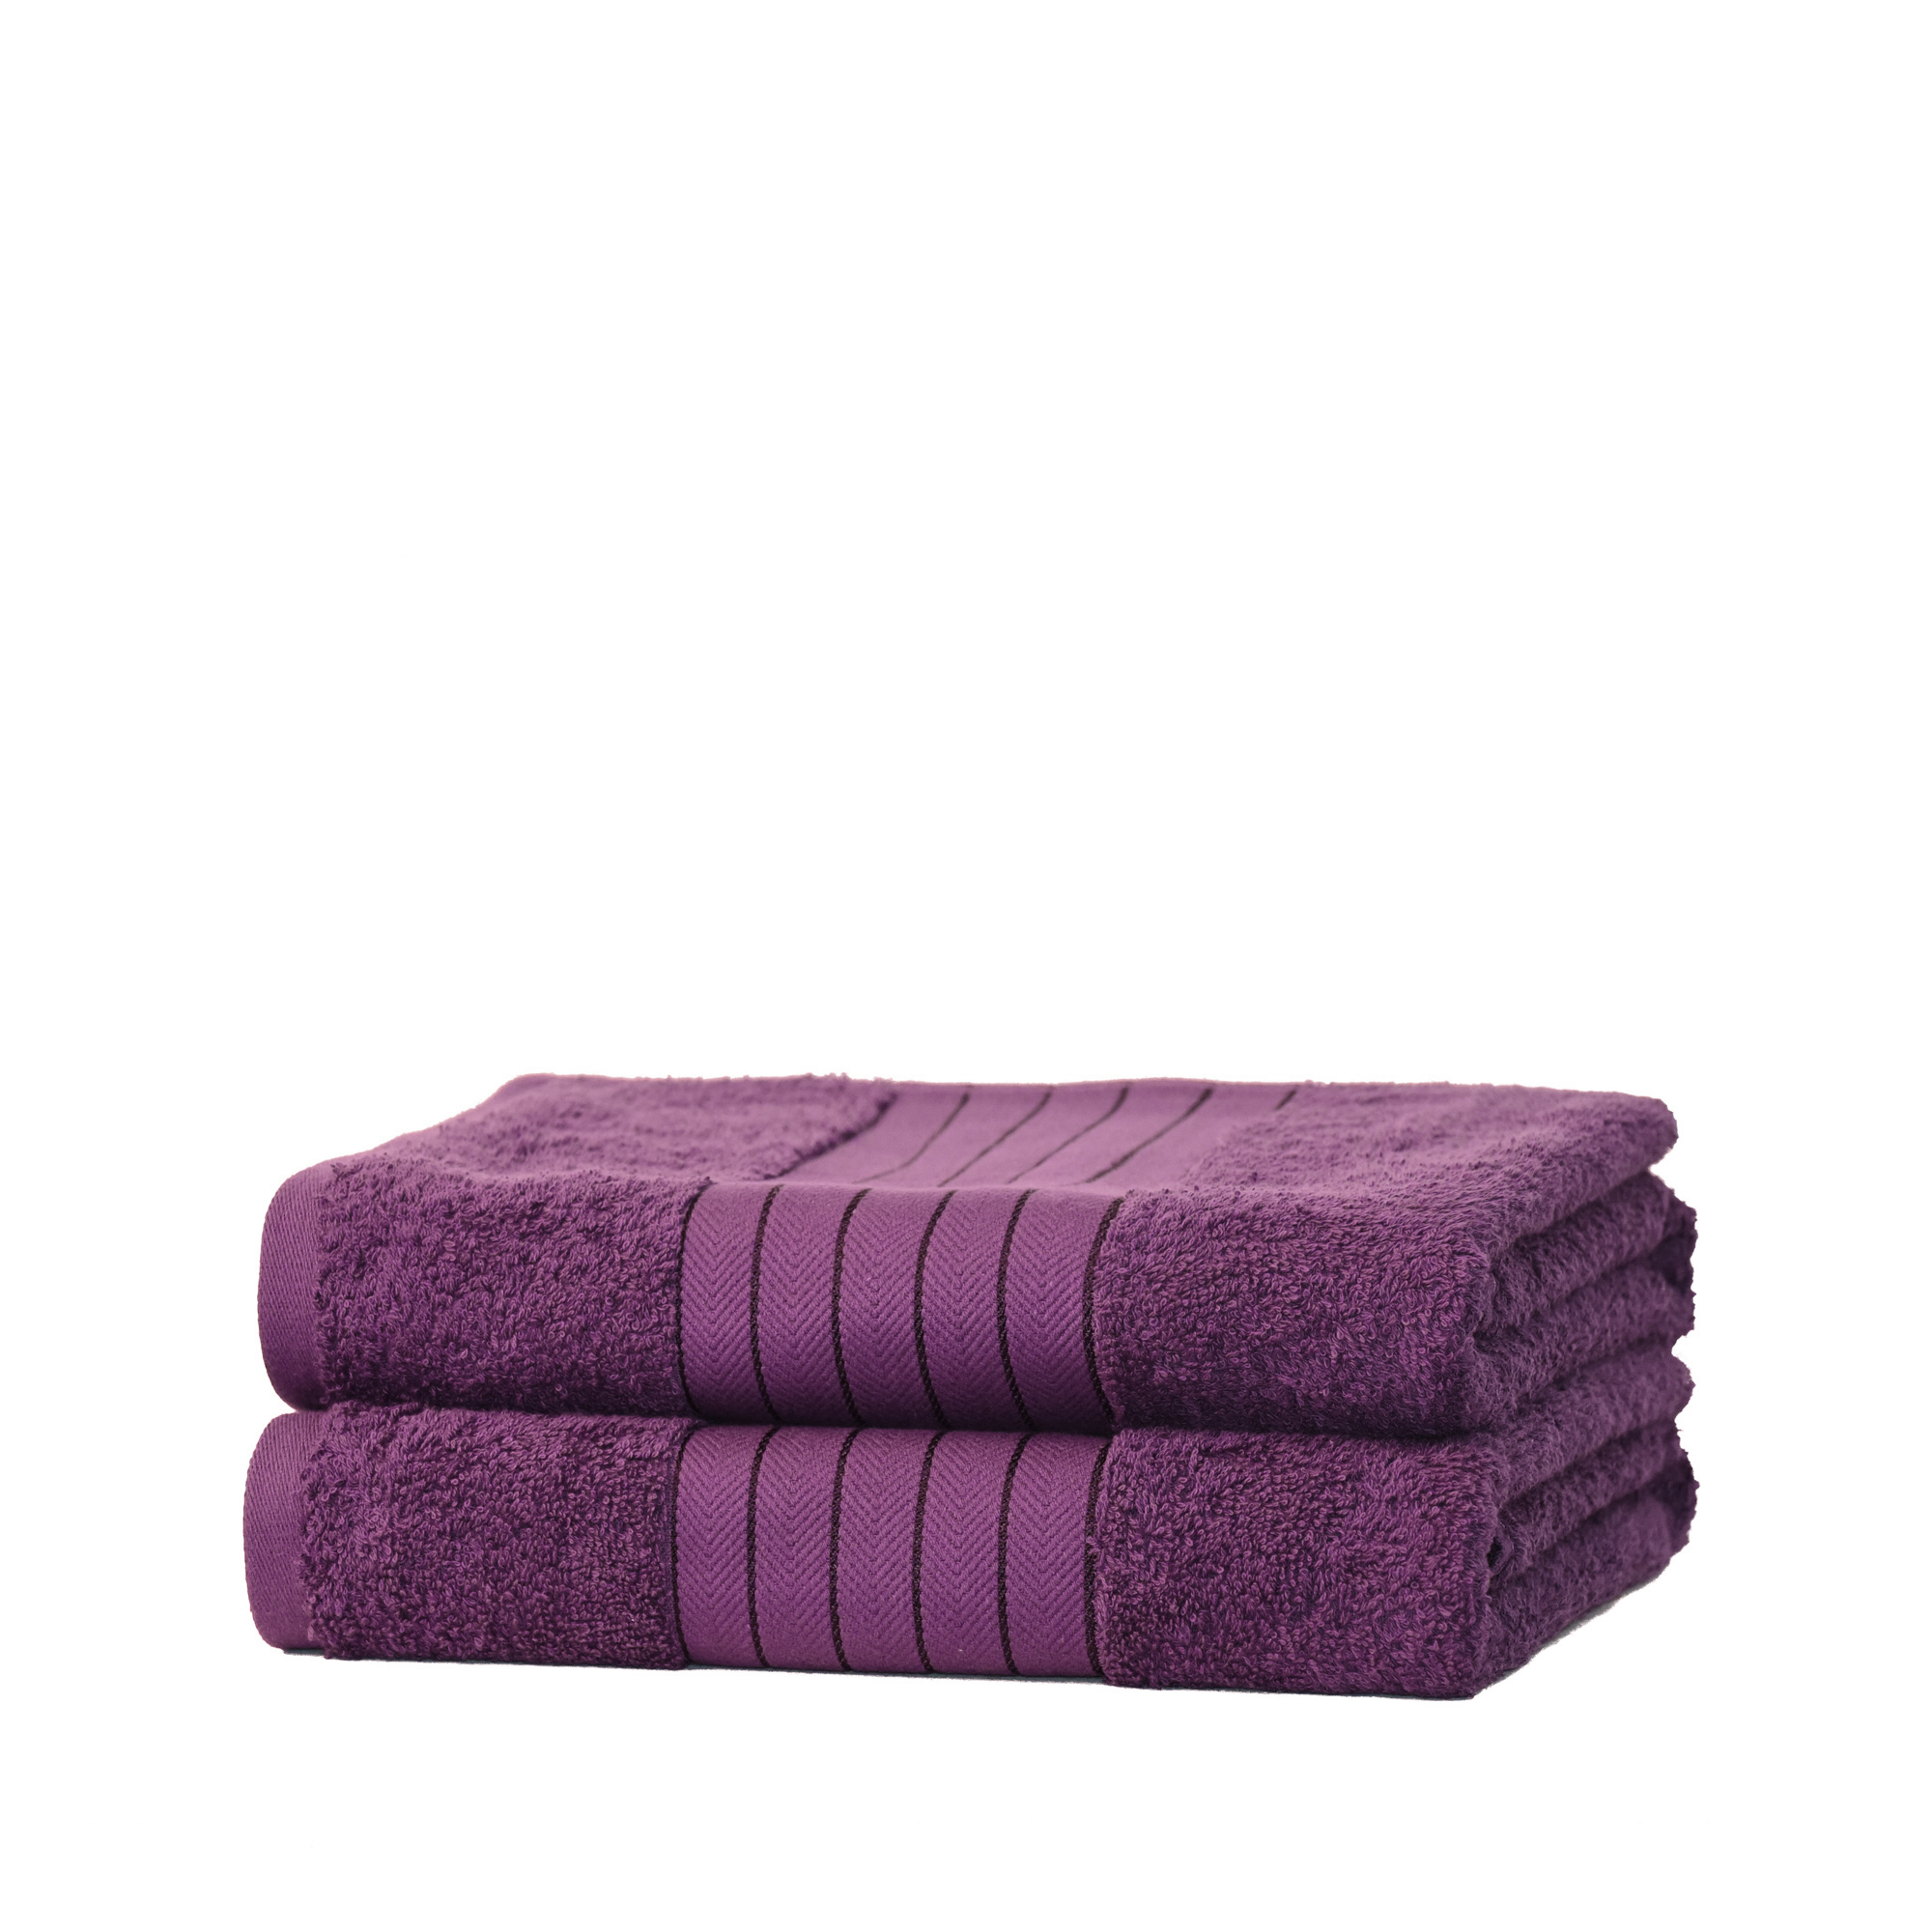 Face Towel Dream Meaning: Dreamscene 100% Cotton Towel Bale Luxury Super Soft Bath